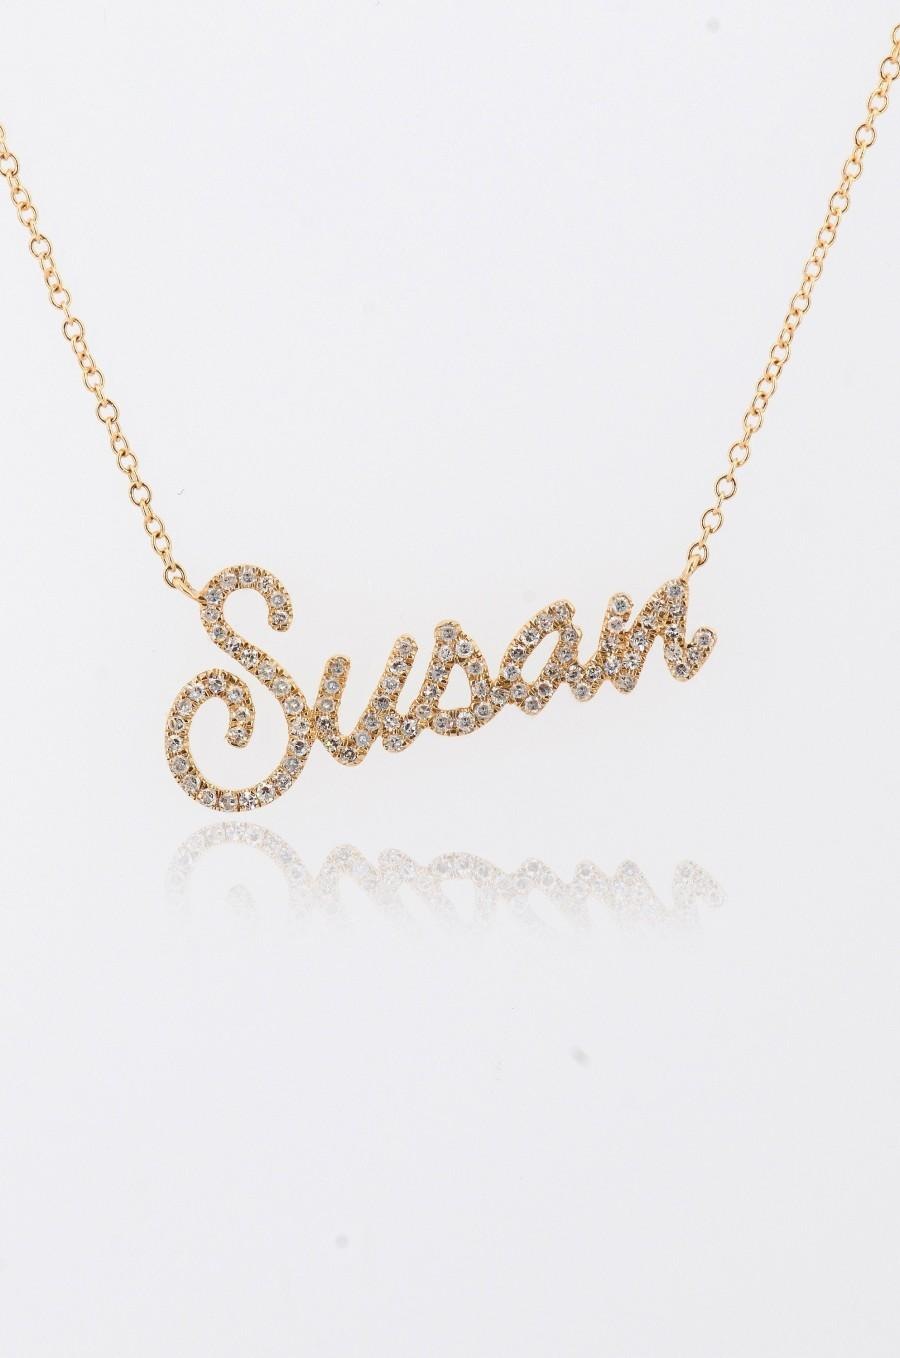 Wedding - Diamond Personalized Name Necklace, Customized Diamond Initial Letter Chain, Dainty Nameplate, 14K Name Necklace, Custom Name Necklace Gift